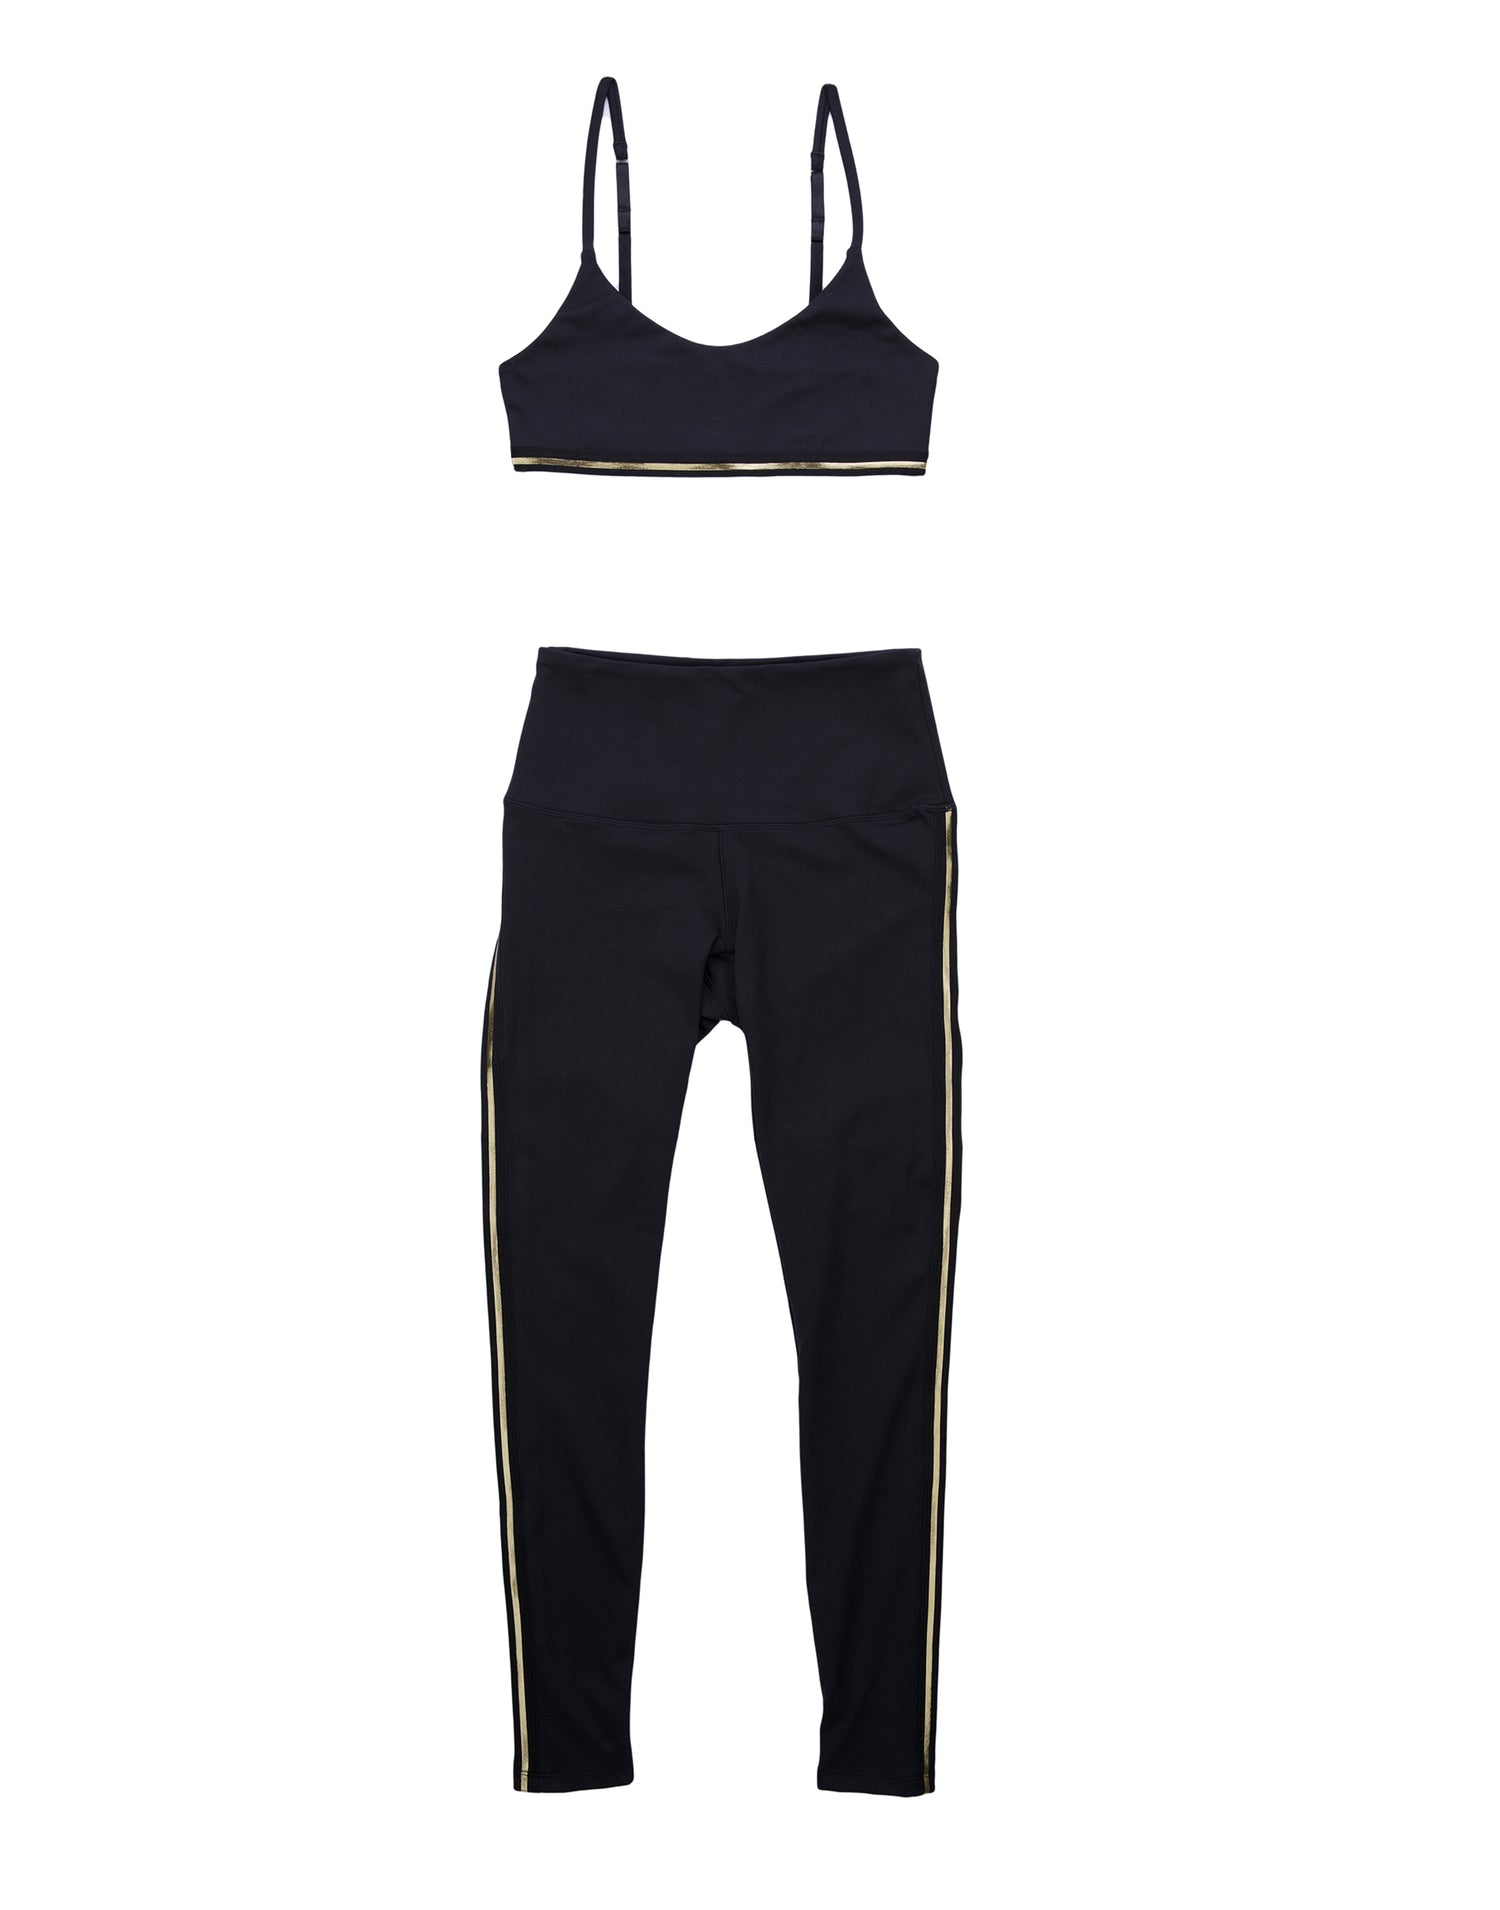 Lolo Sports Bra in Black with Gold Stripe - product view